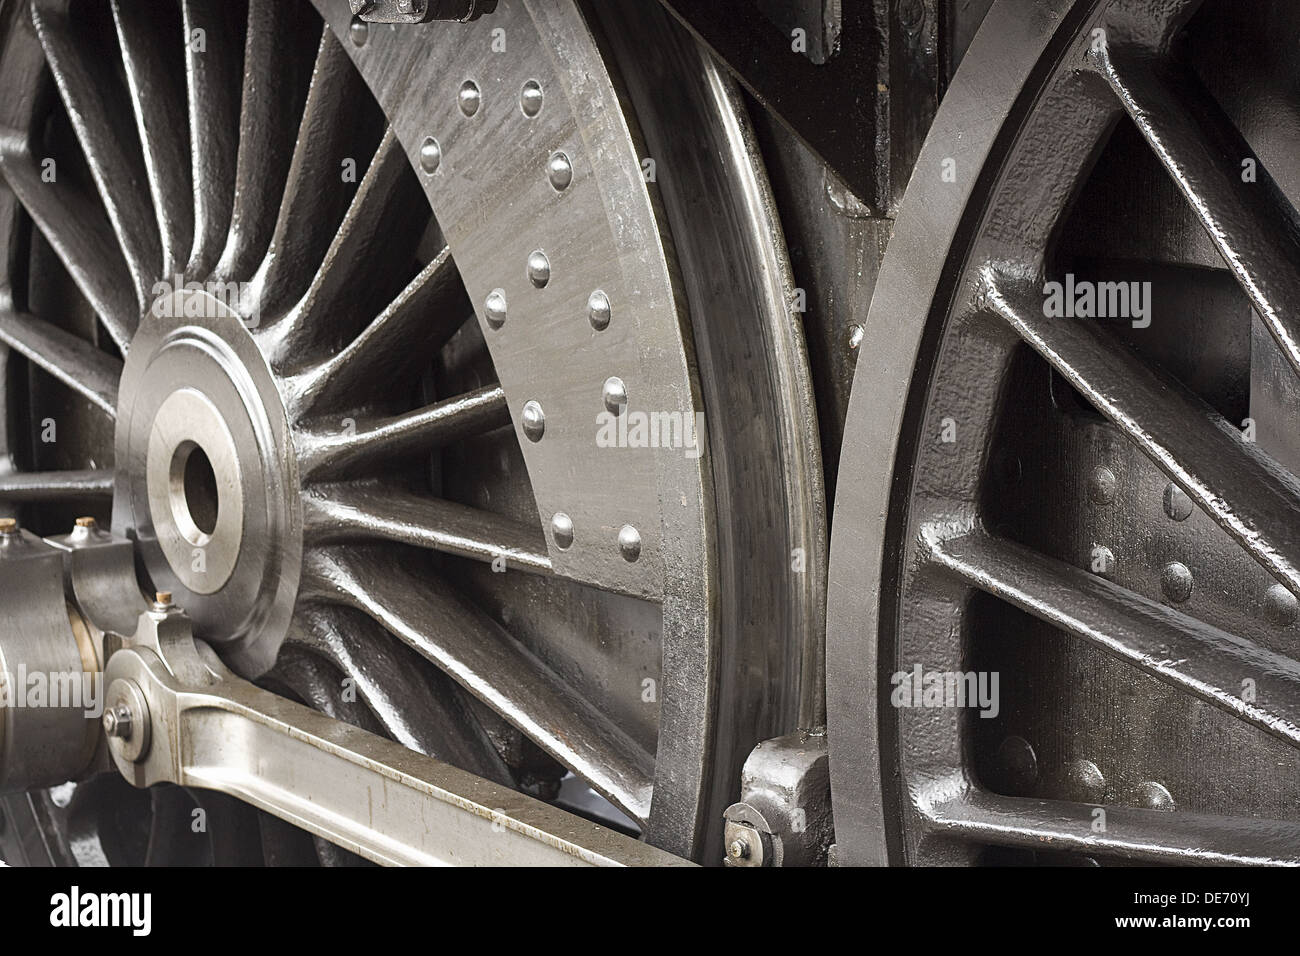 Steam train wheels close up detail shot of the chassis or running gear - Stock Image